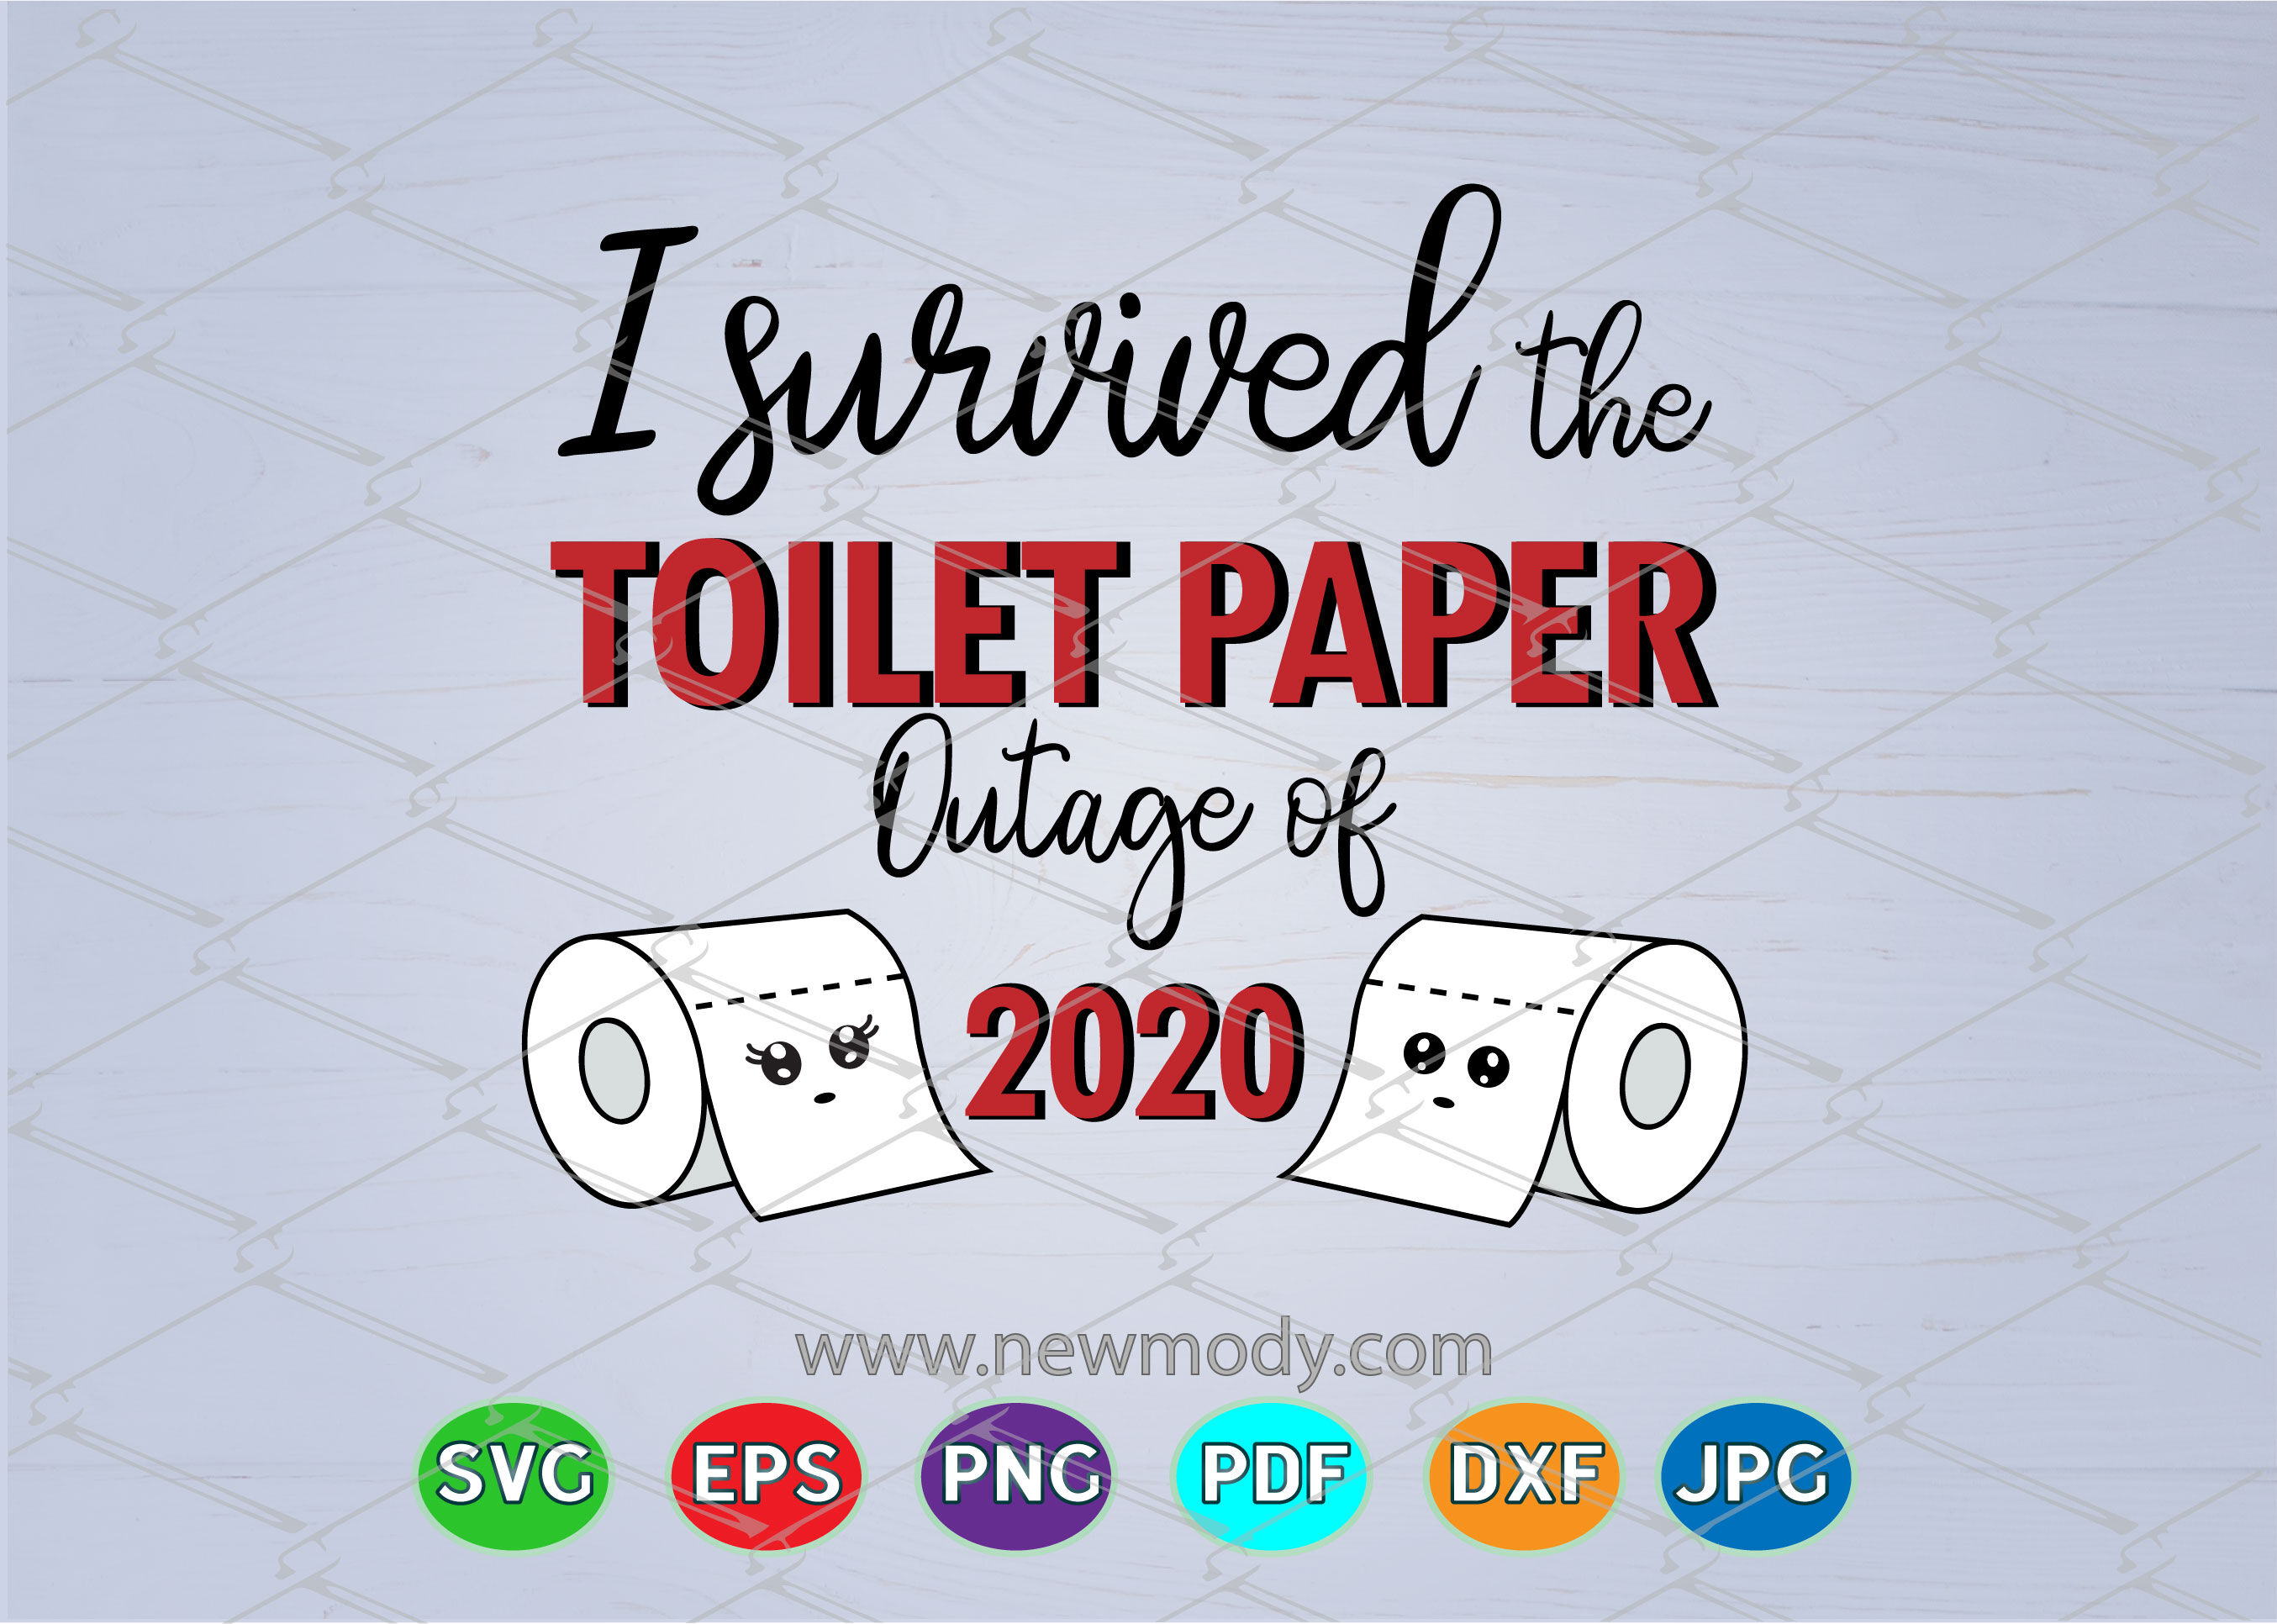 I Survived The Toilet Paper Outage Of 2020 Svg Toilet Paper